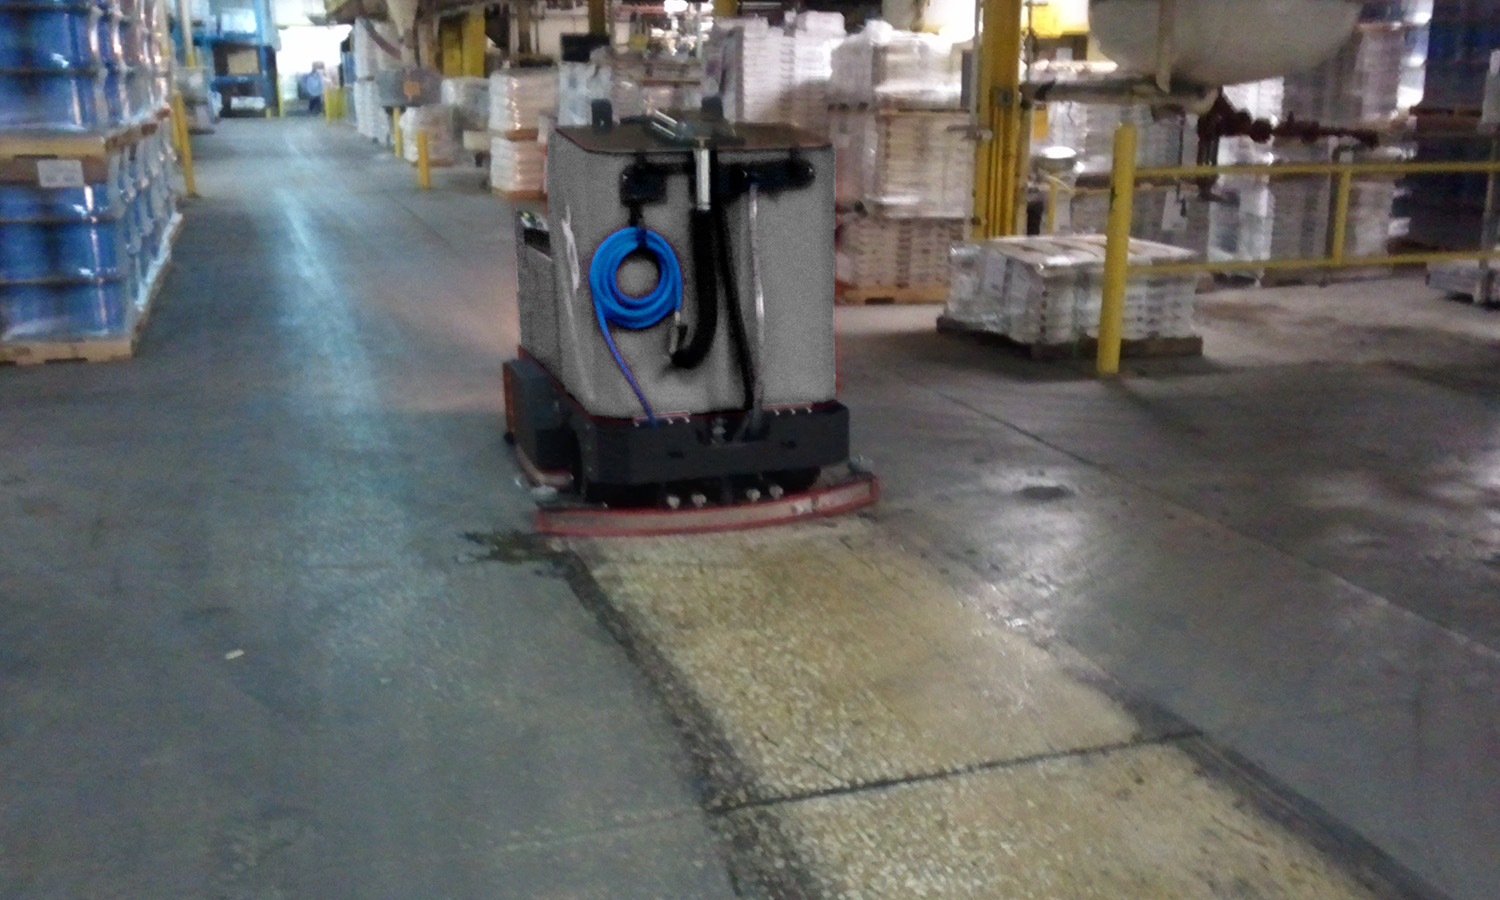 Tomcat Floor Scrubber Demonstration in a Warehouse